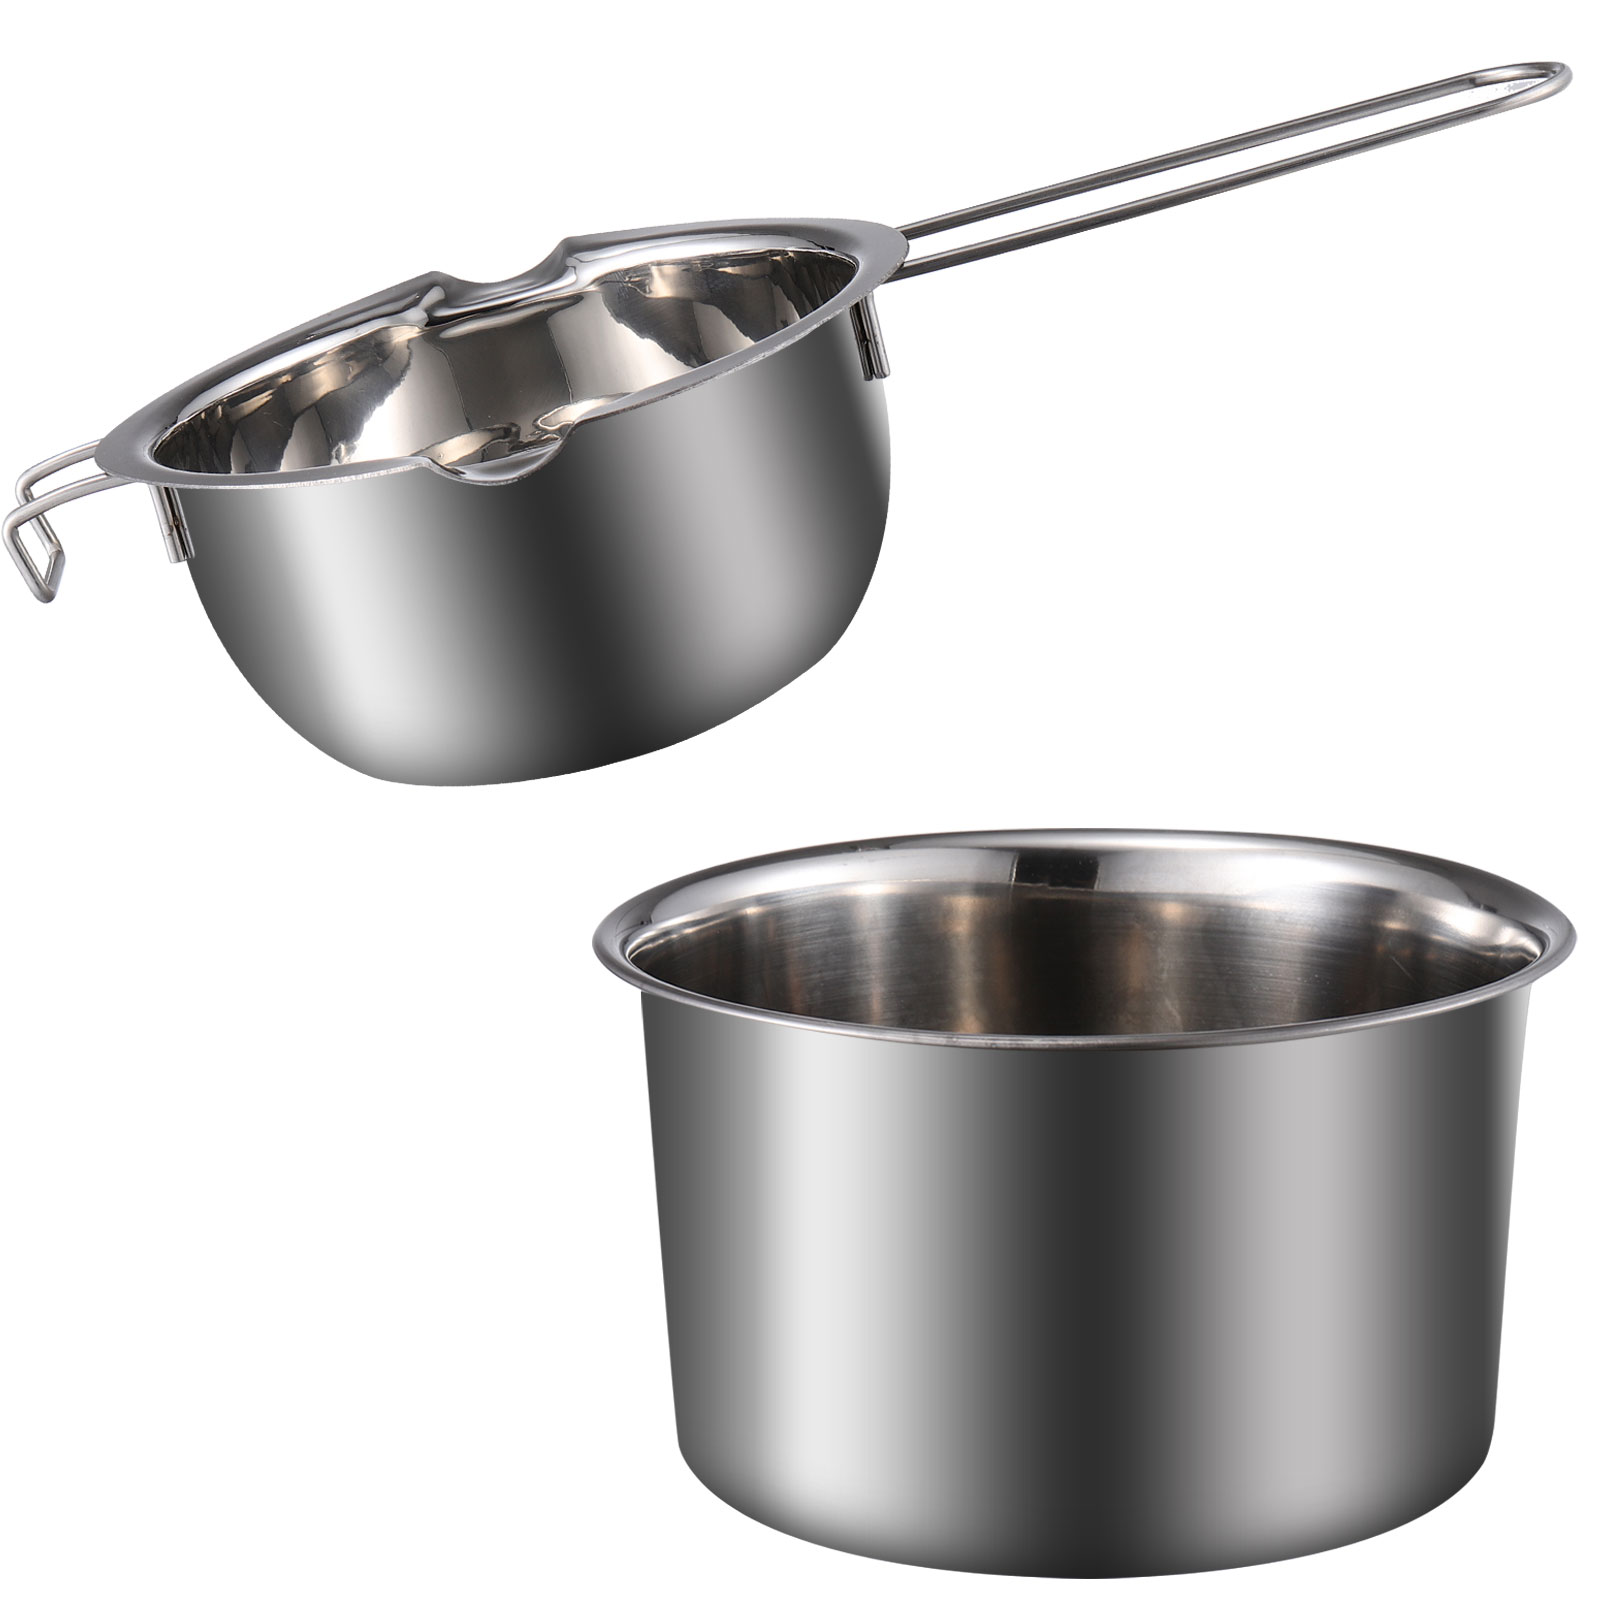 Stainless steel melting pots set for Chocolate